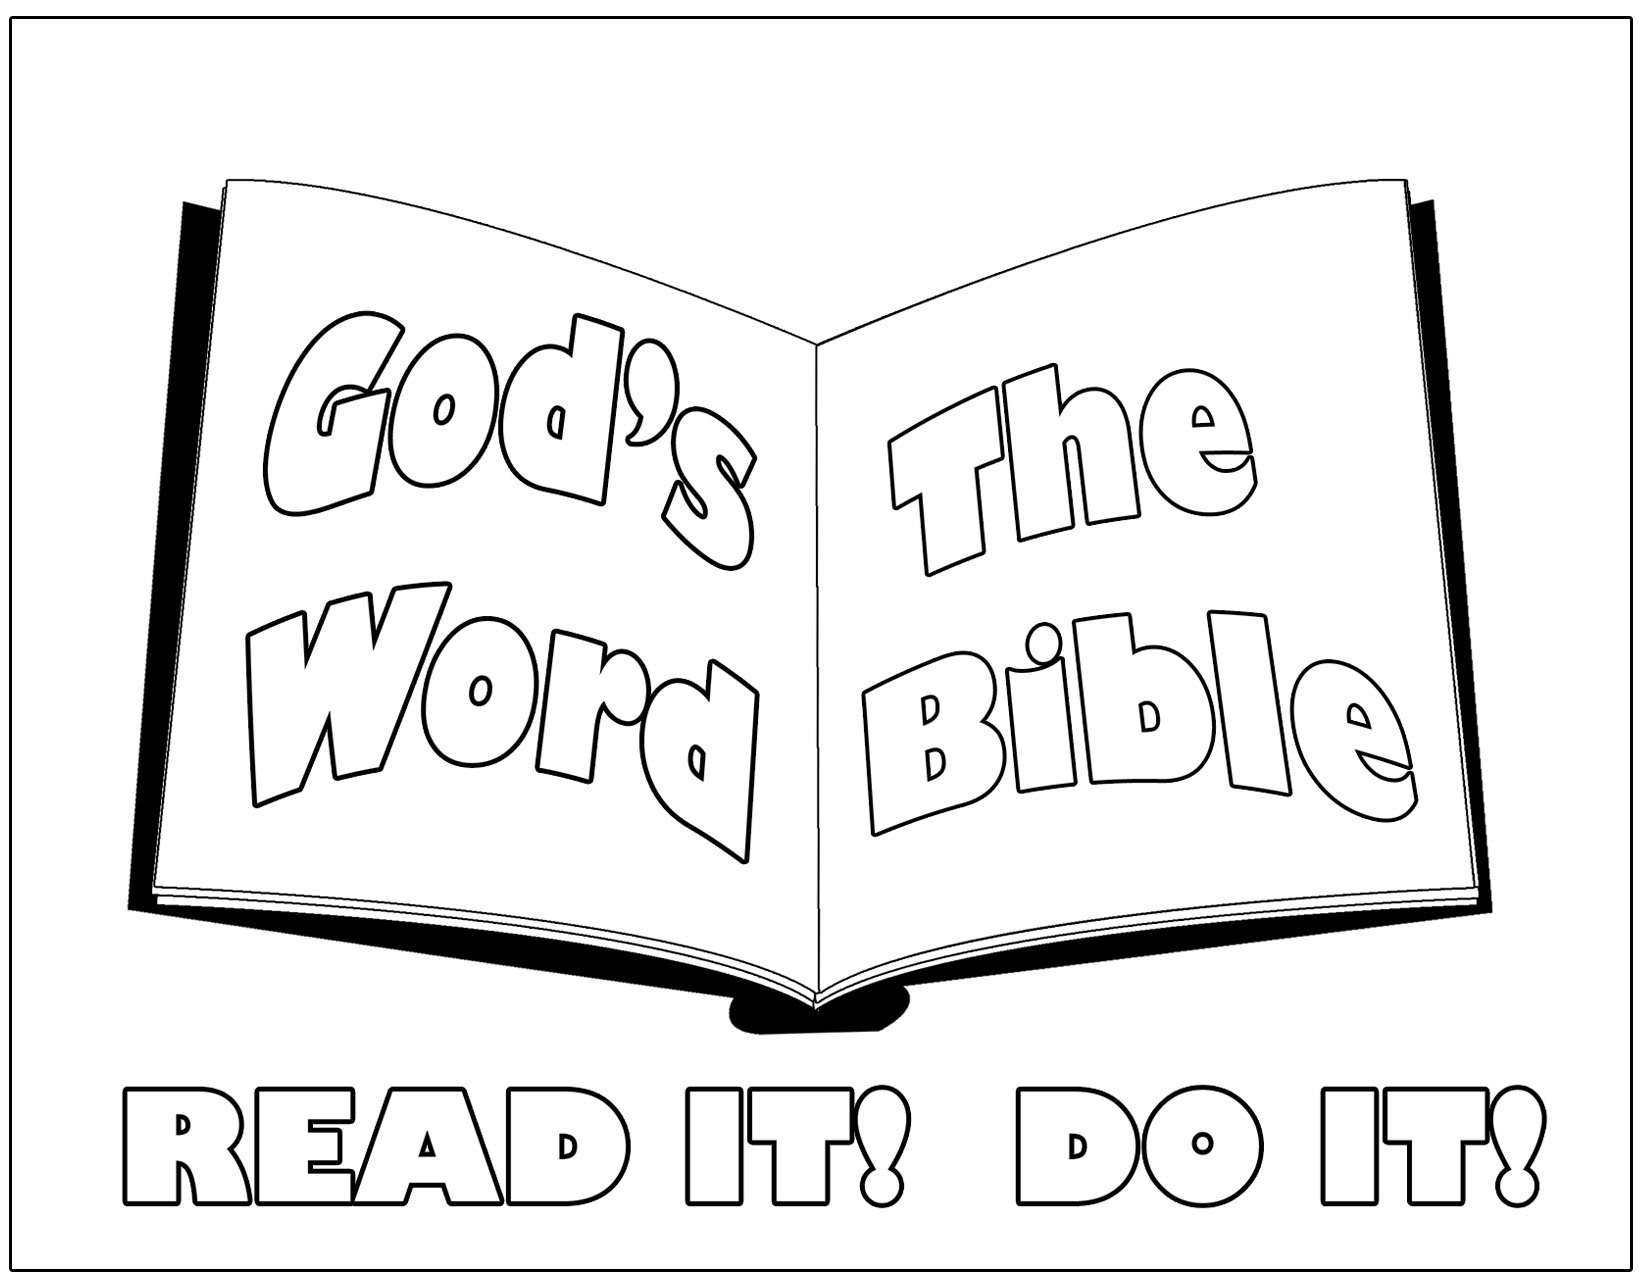 child bible story coloring pages - photo#35